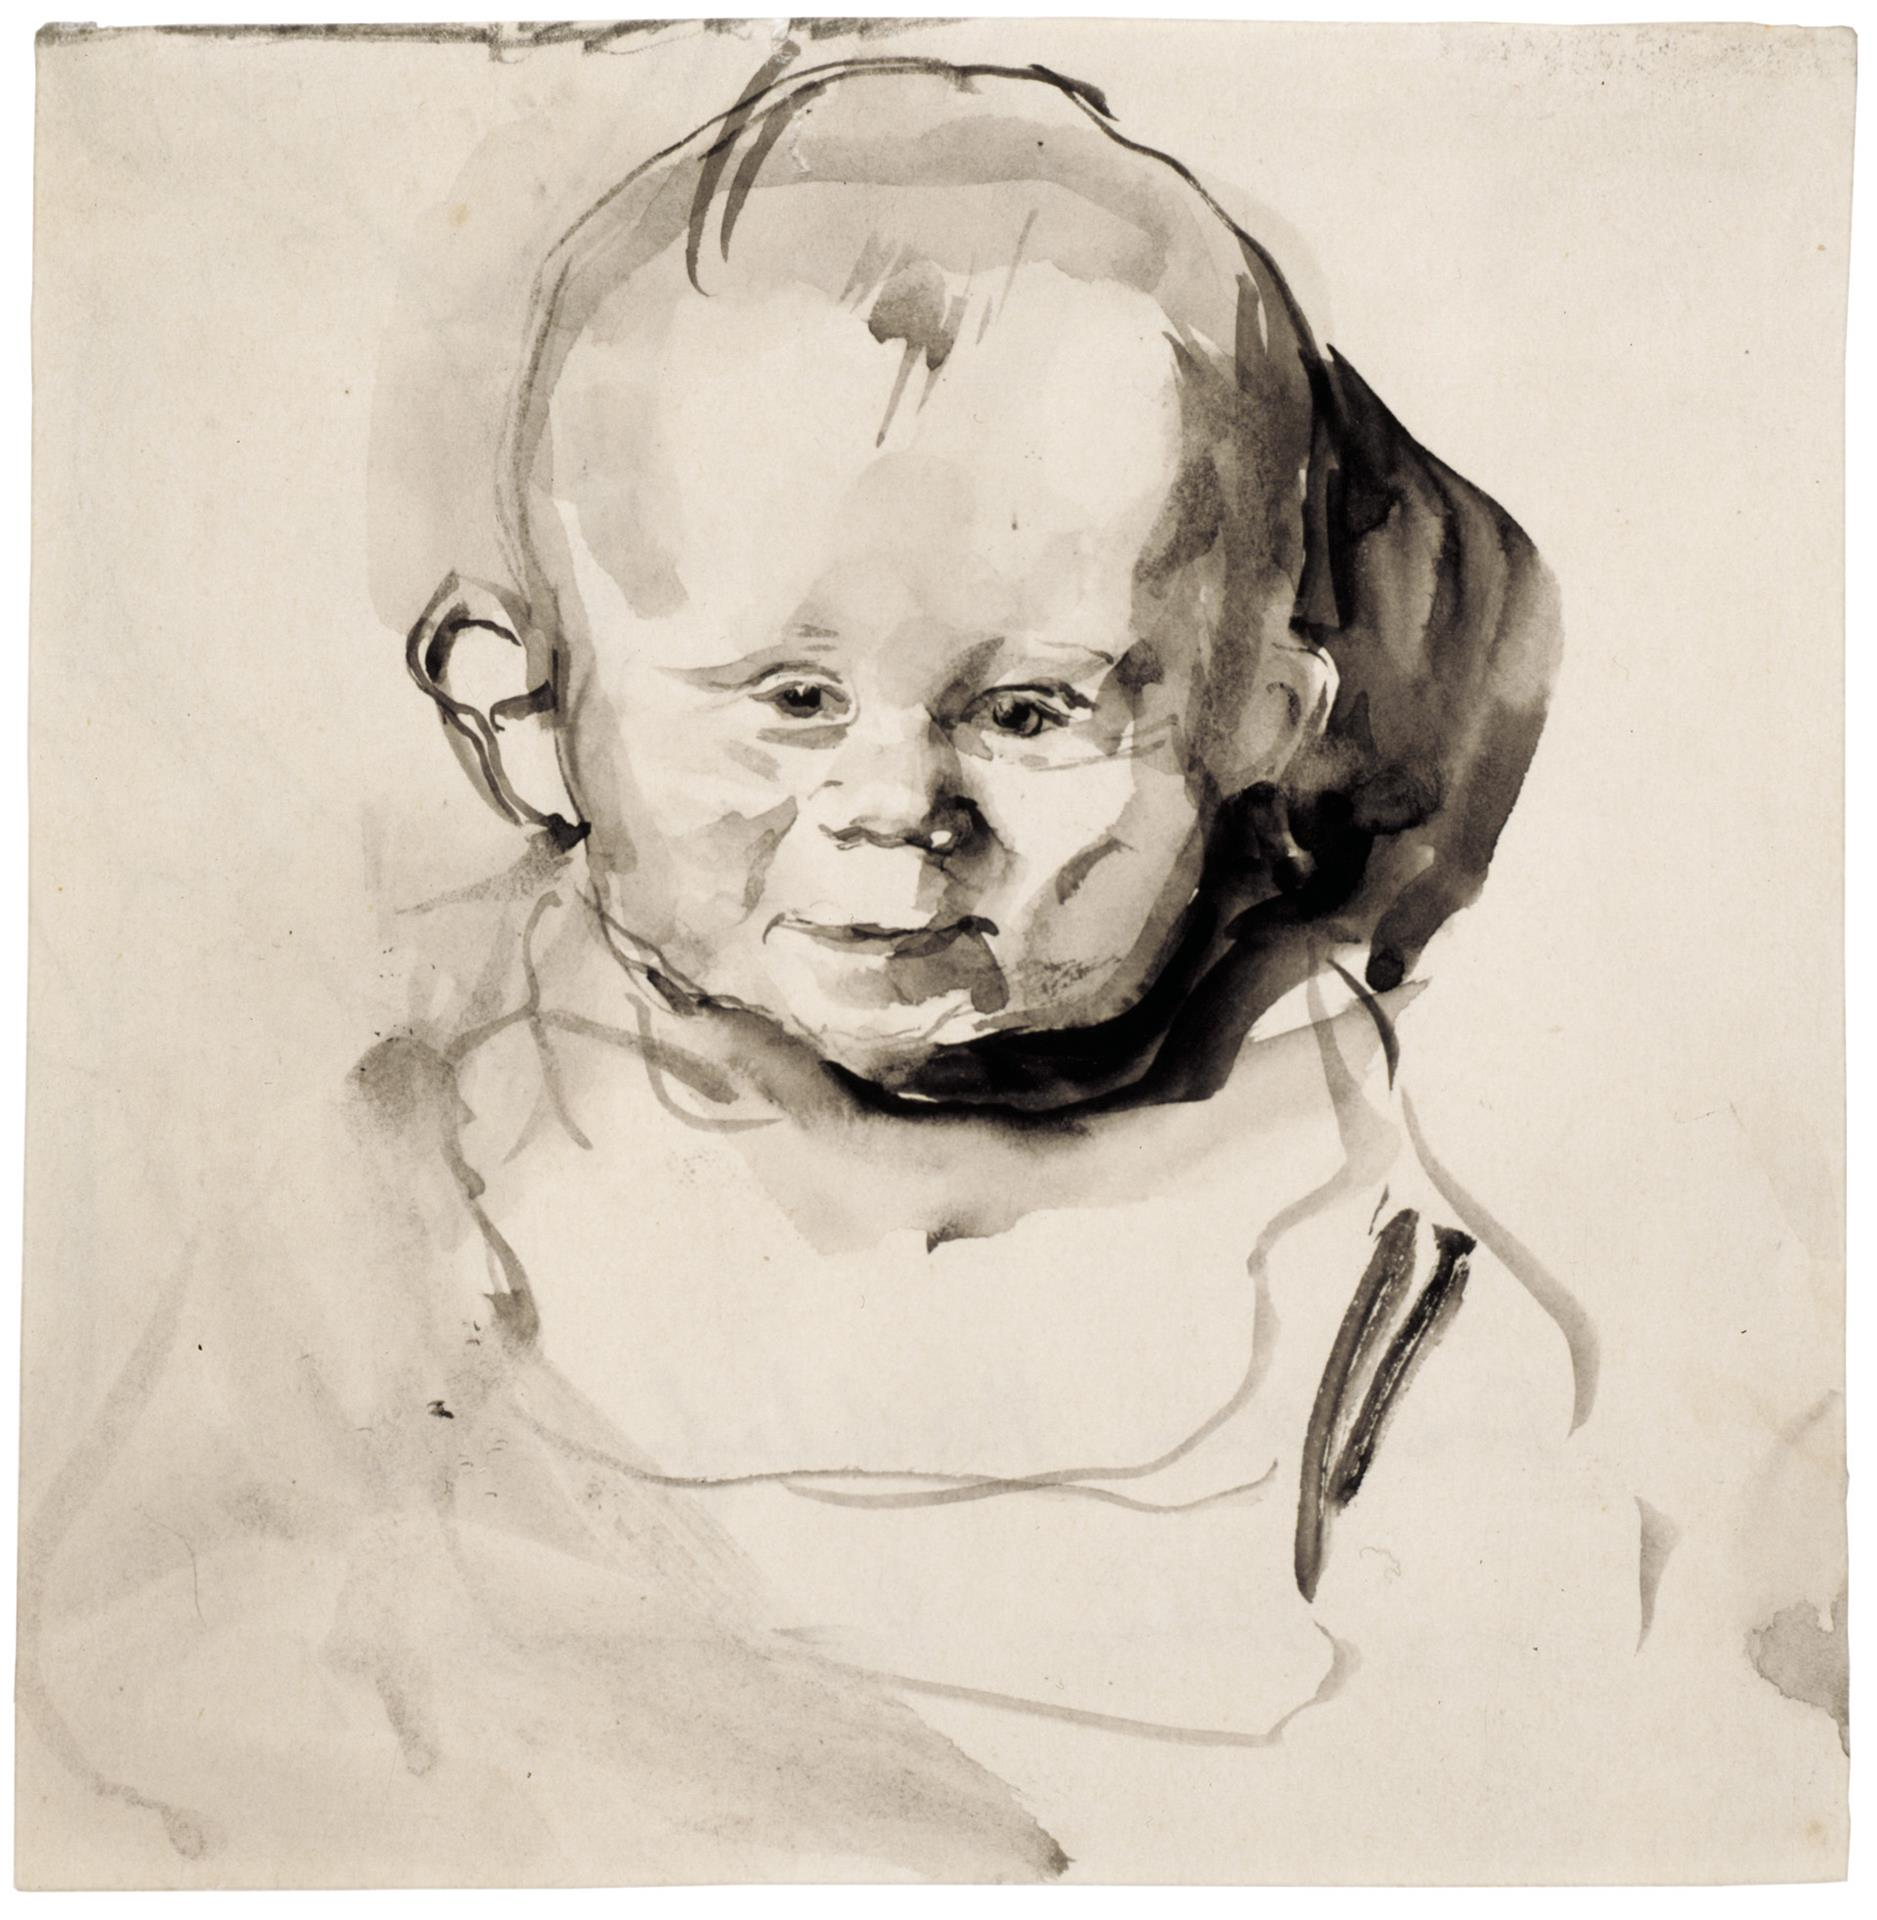 Käthe Kollwitz, Child's Head, en face, (Hans Kollwitz), 1893, brush and grey ink, washed, NT 72, Cologne Kollwitz Collection © Käthe Kollwitz Museum Köln